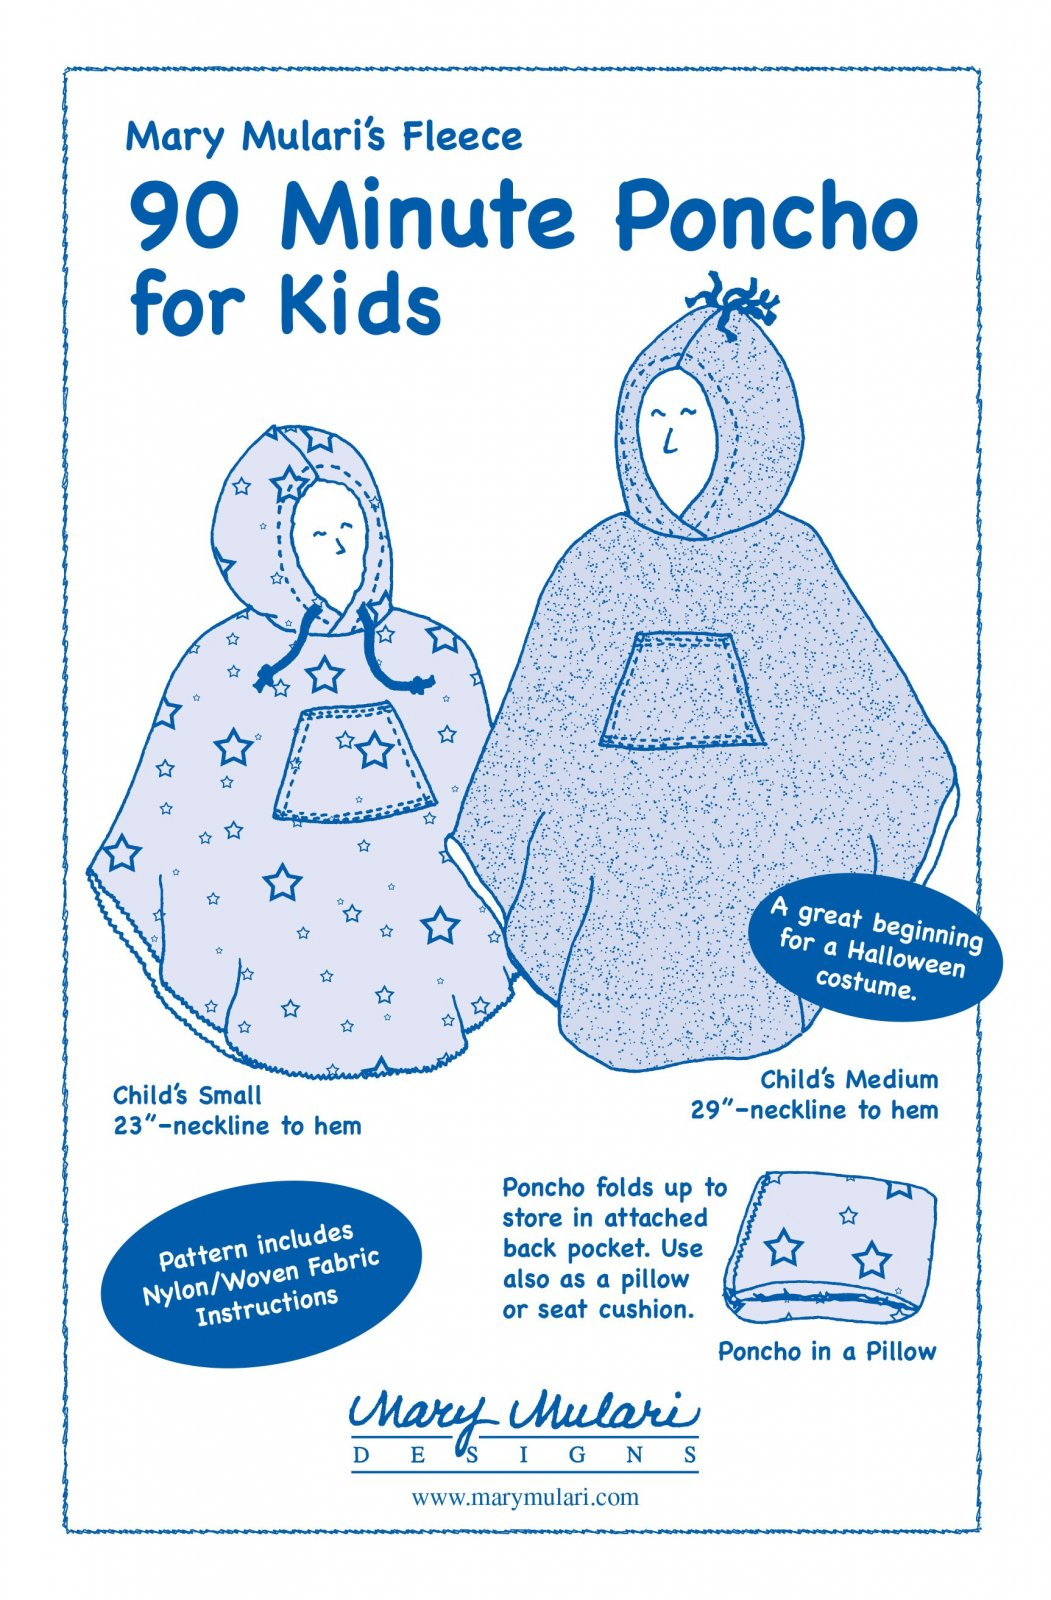 90 Minute Poncho for Kids